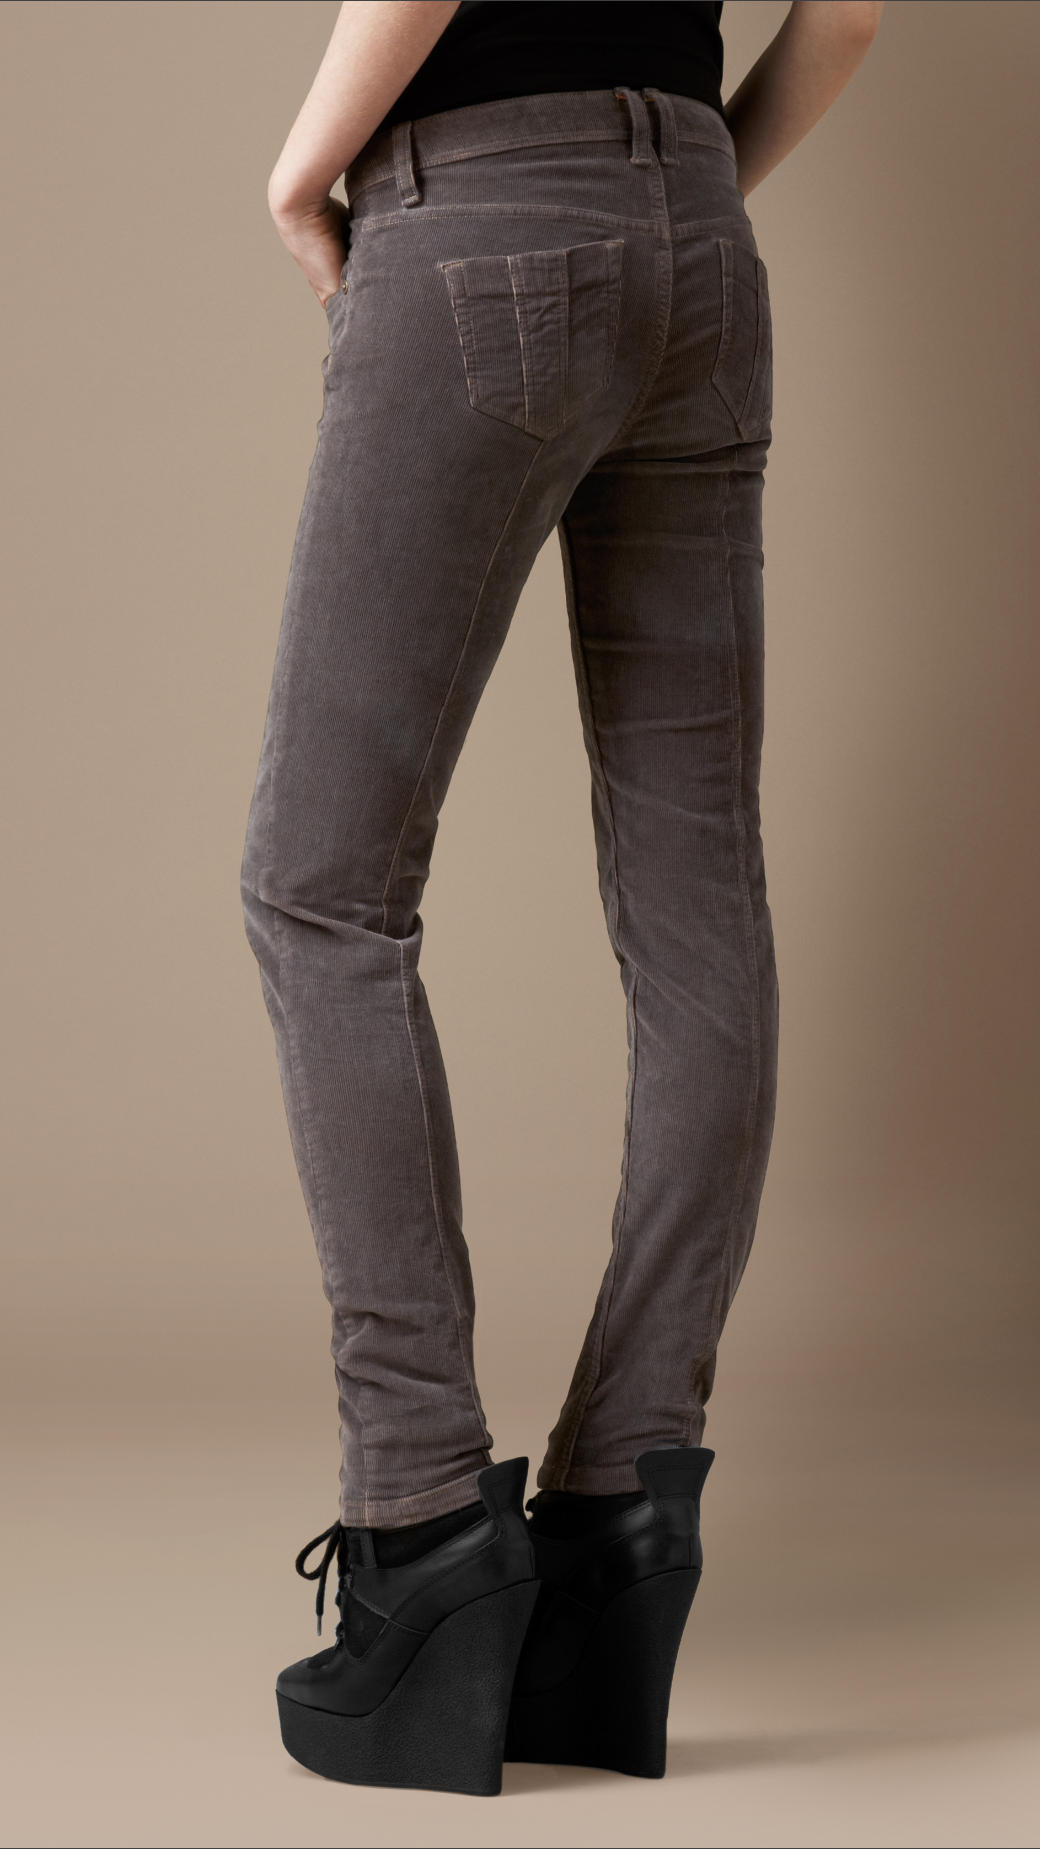 420b48db026d Lyst - Burberry Brit Westbourne Grey Skinny Jeans in Gray